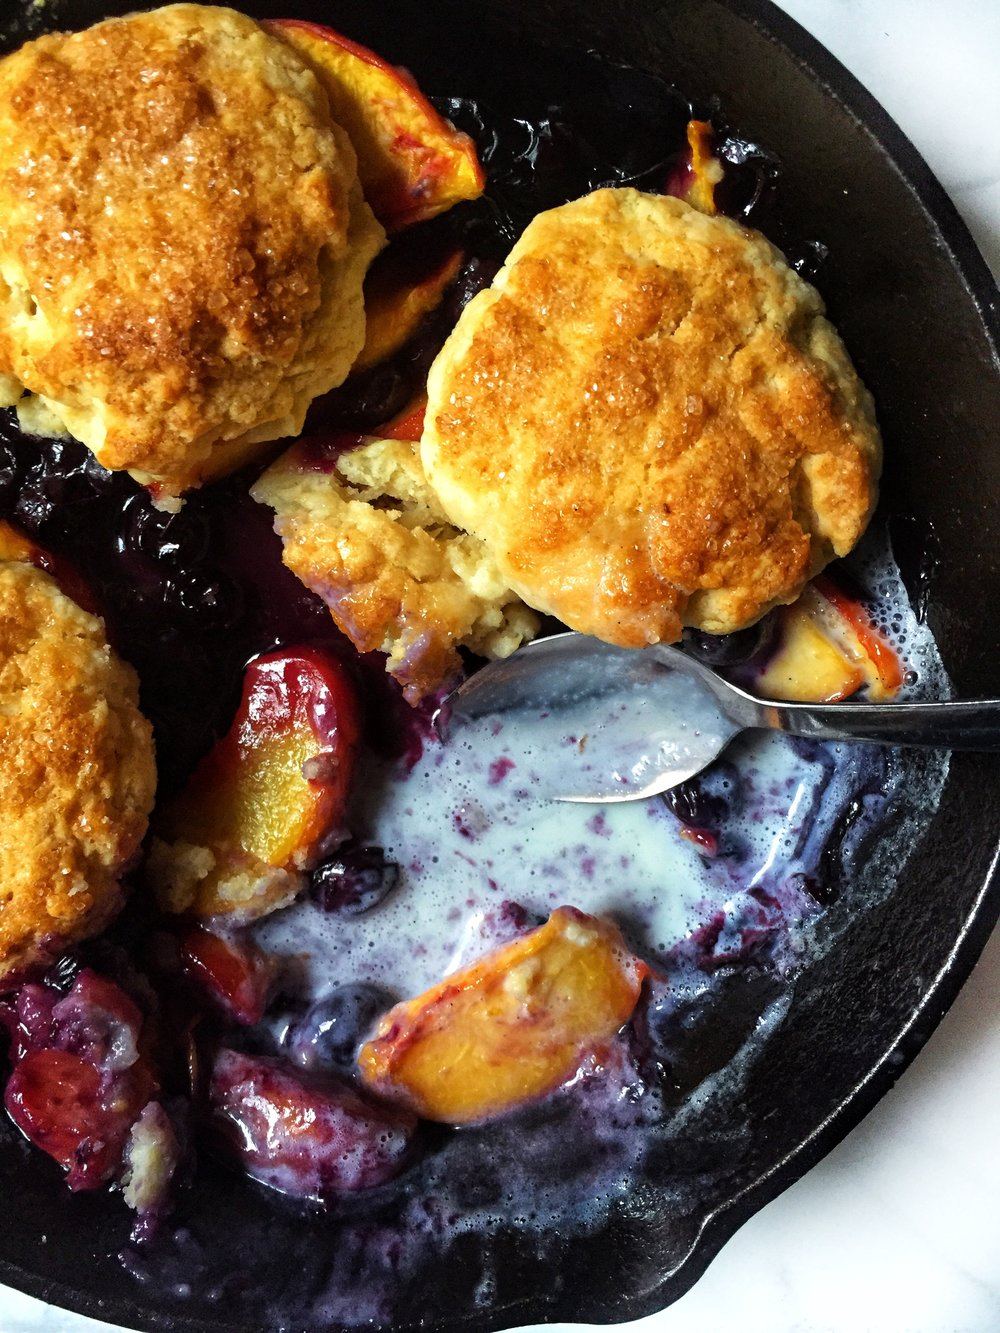 warm blueberry & peach cobbler with biscuits and sweet cream